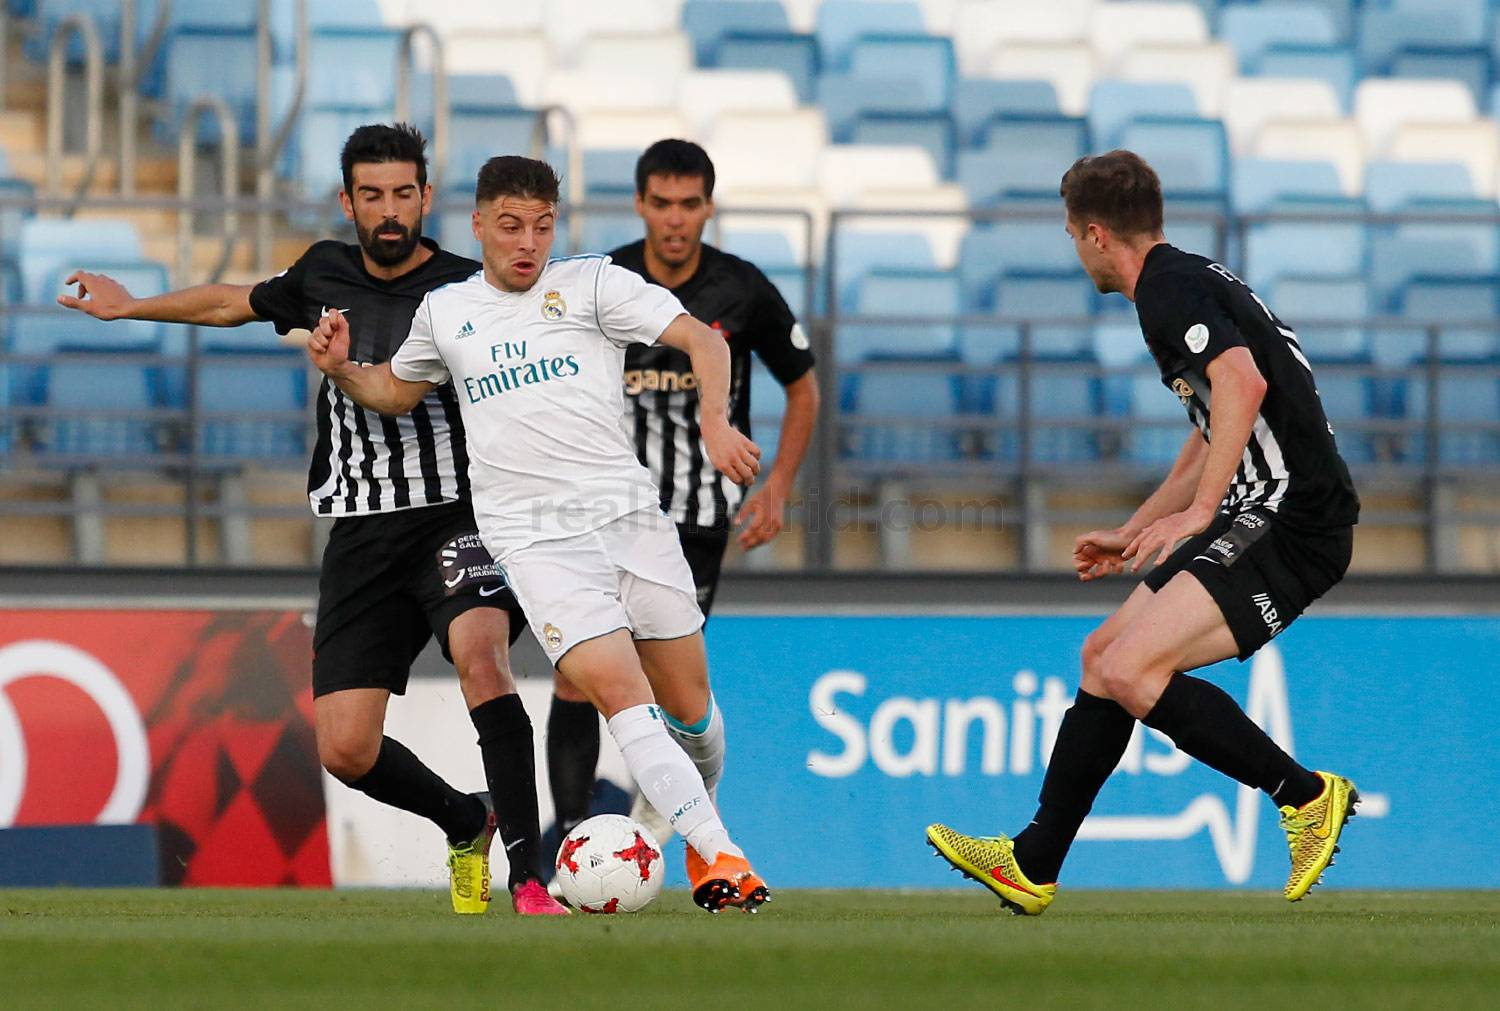 Real Madrid - Real Madrid Castilla - Racing de Ferrol - 05-05-2018